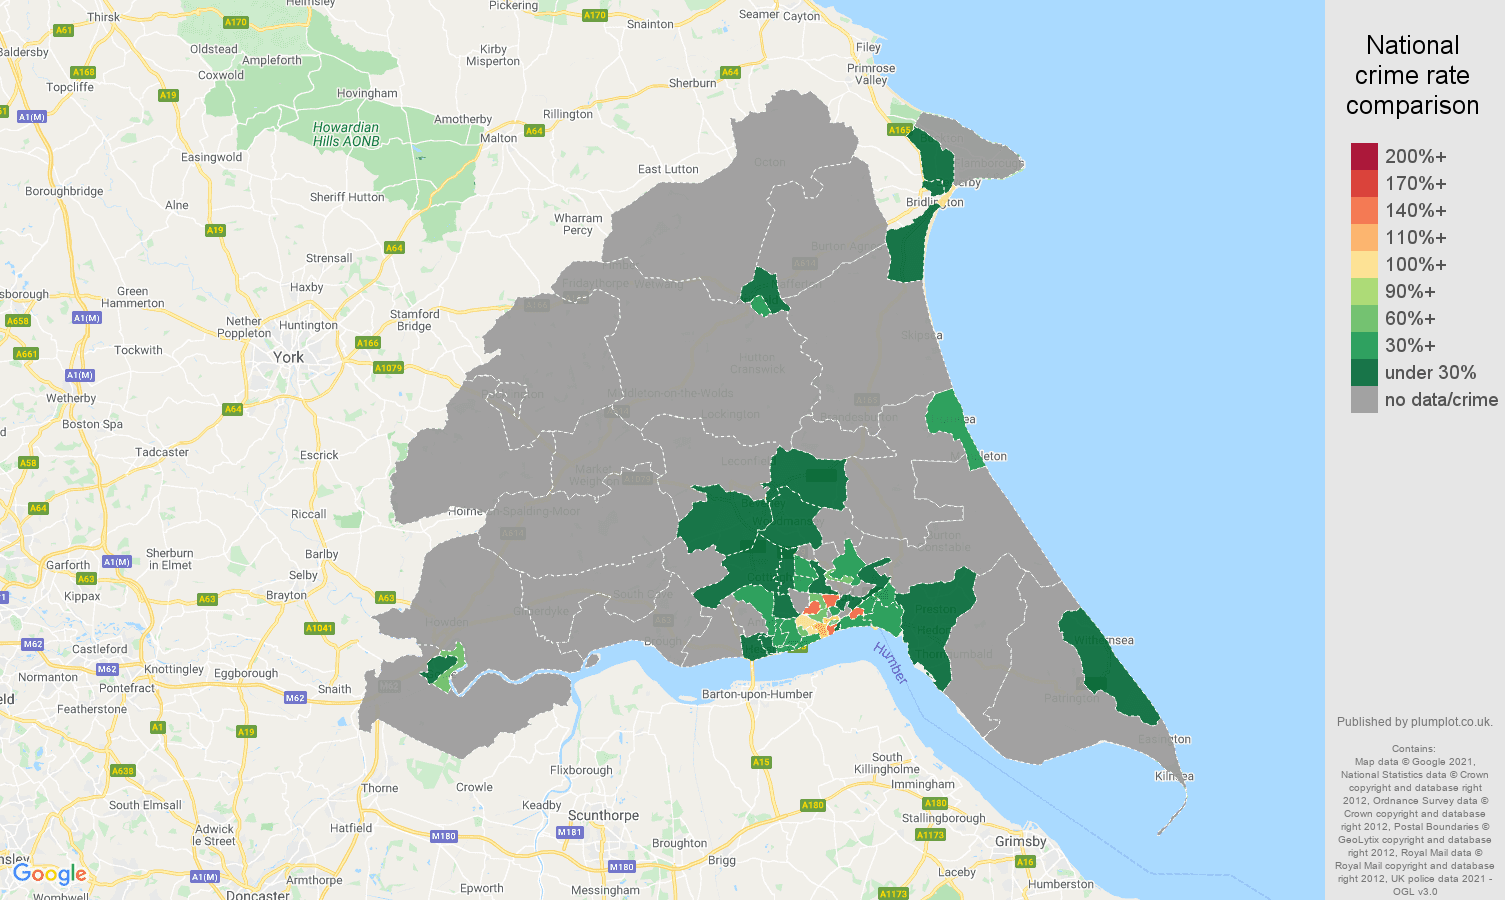 East Riding of Yorkshire theft from the person crime rate comparison map